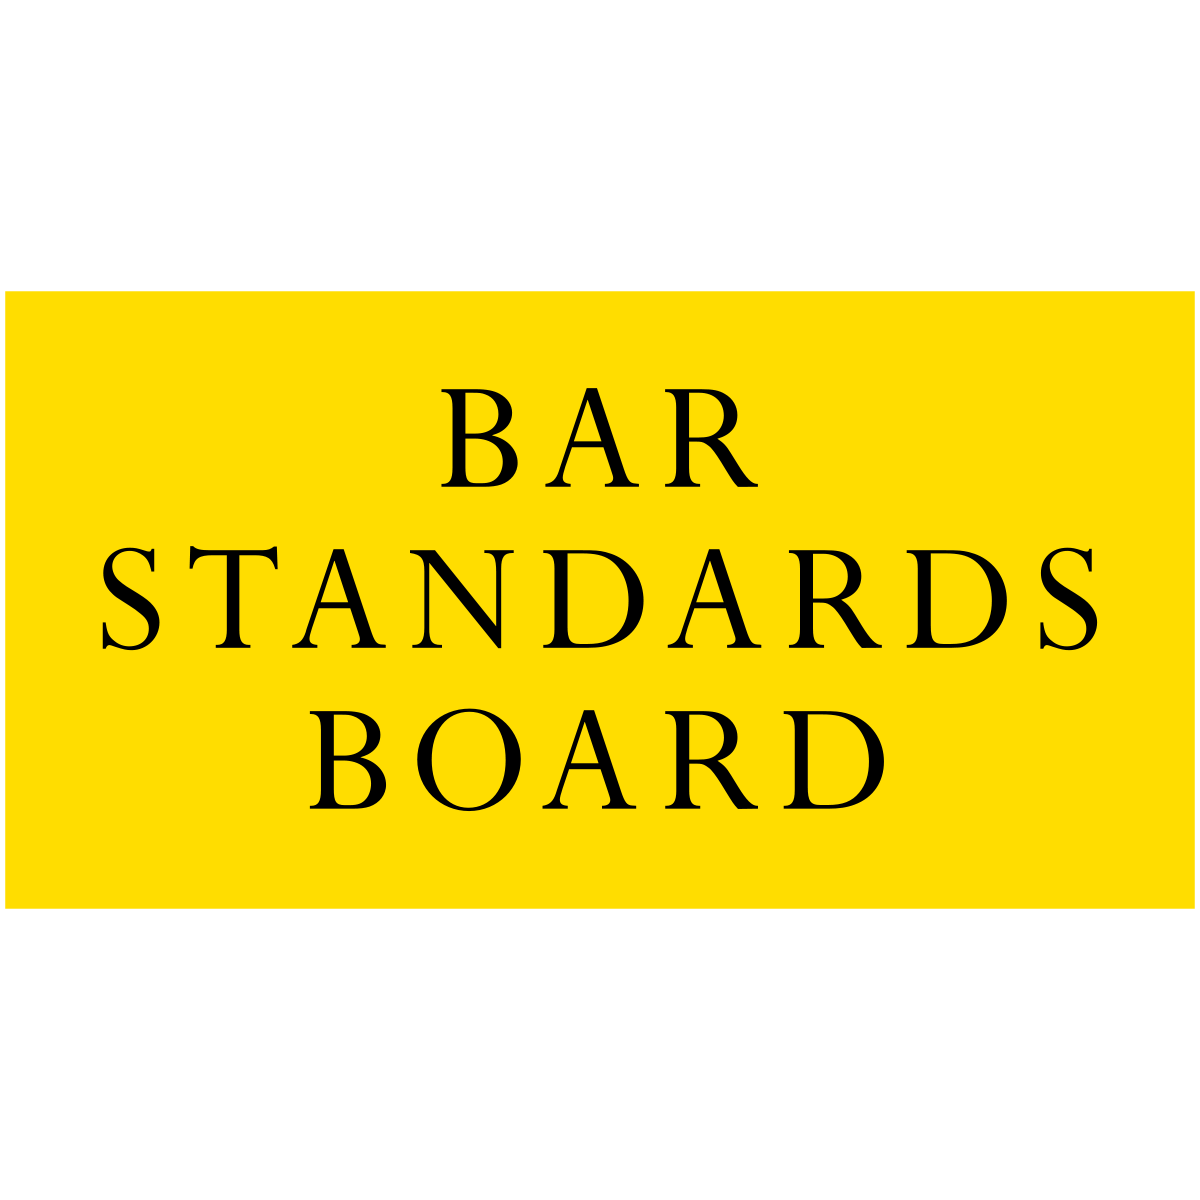 Bar Standards Board - About us - Xperient Communication Skills Training